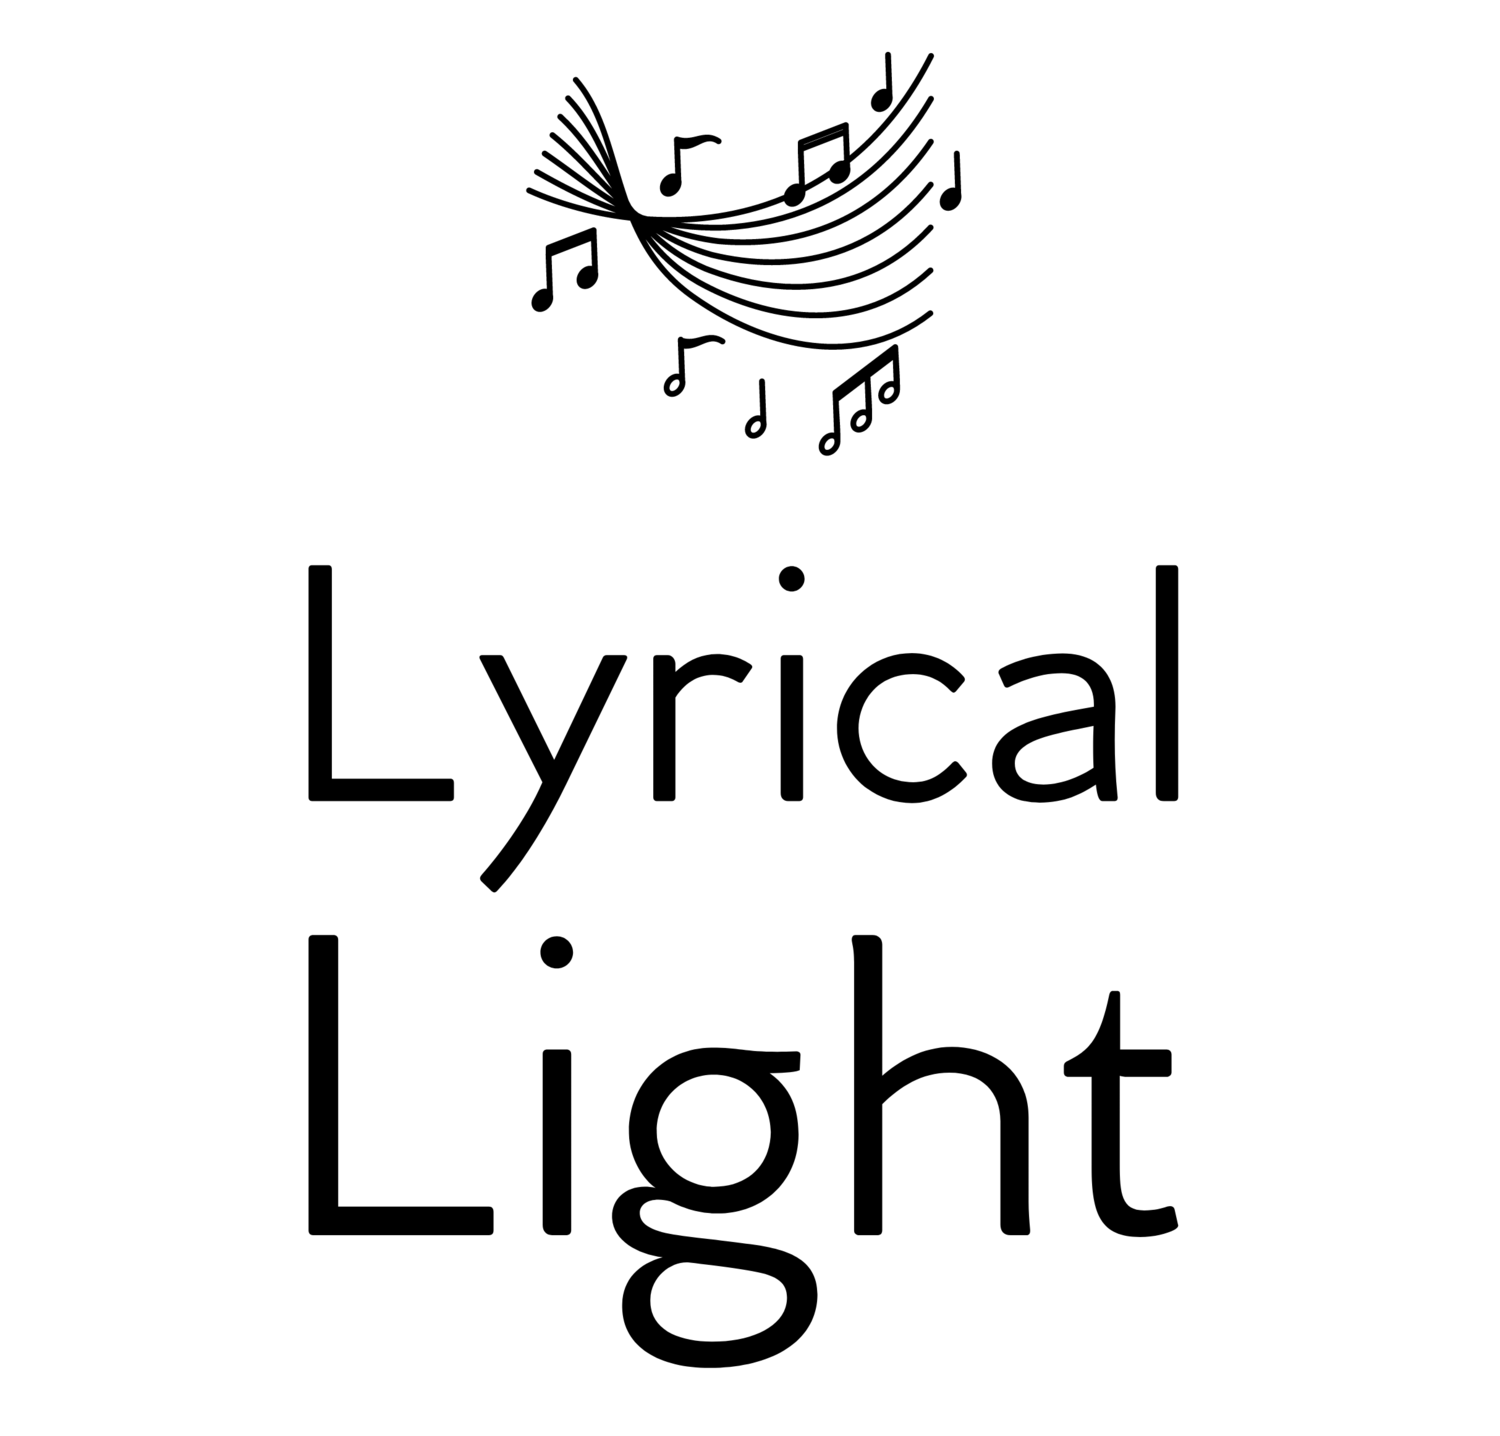 Lyrical Light